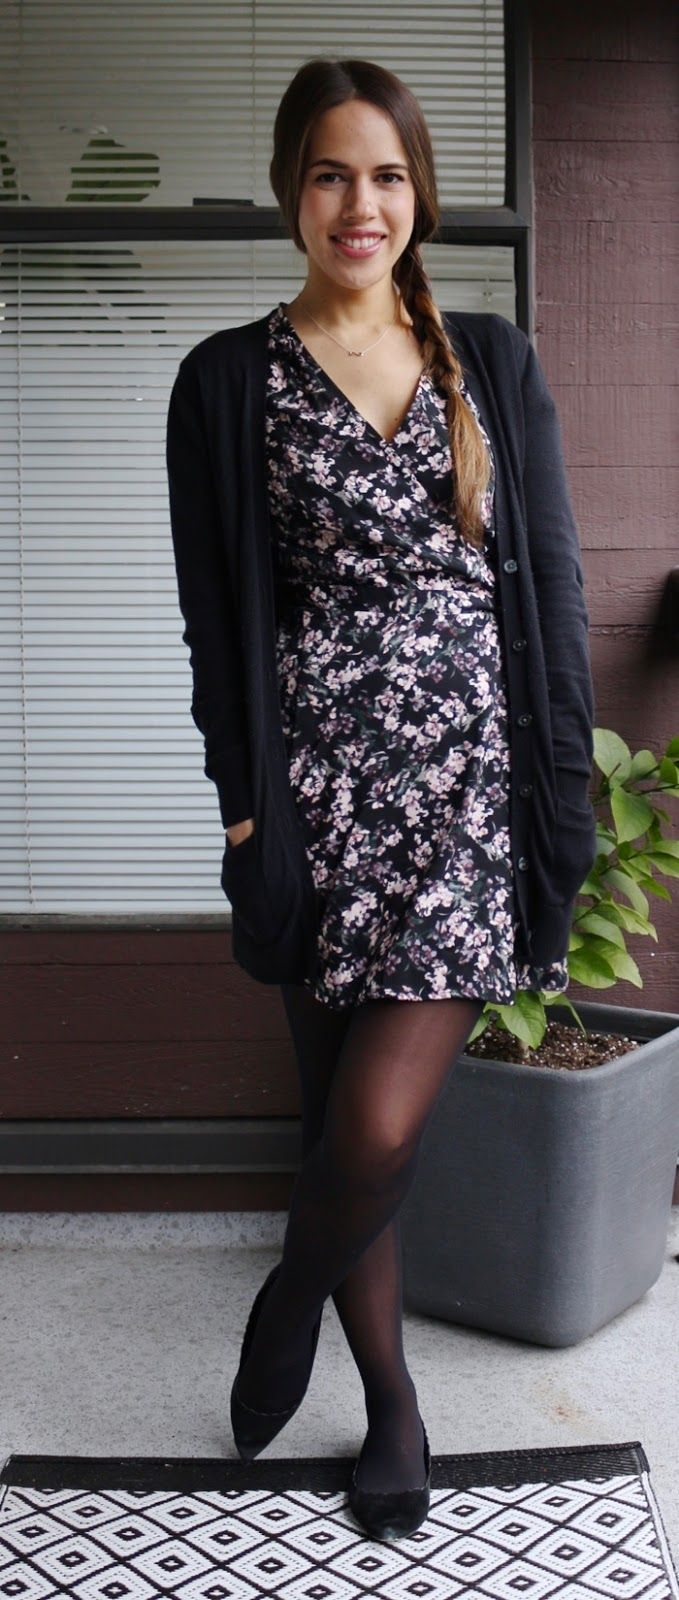 Jules in Flats – Floral Wrap Dress with Cardigan for Work